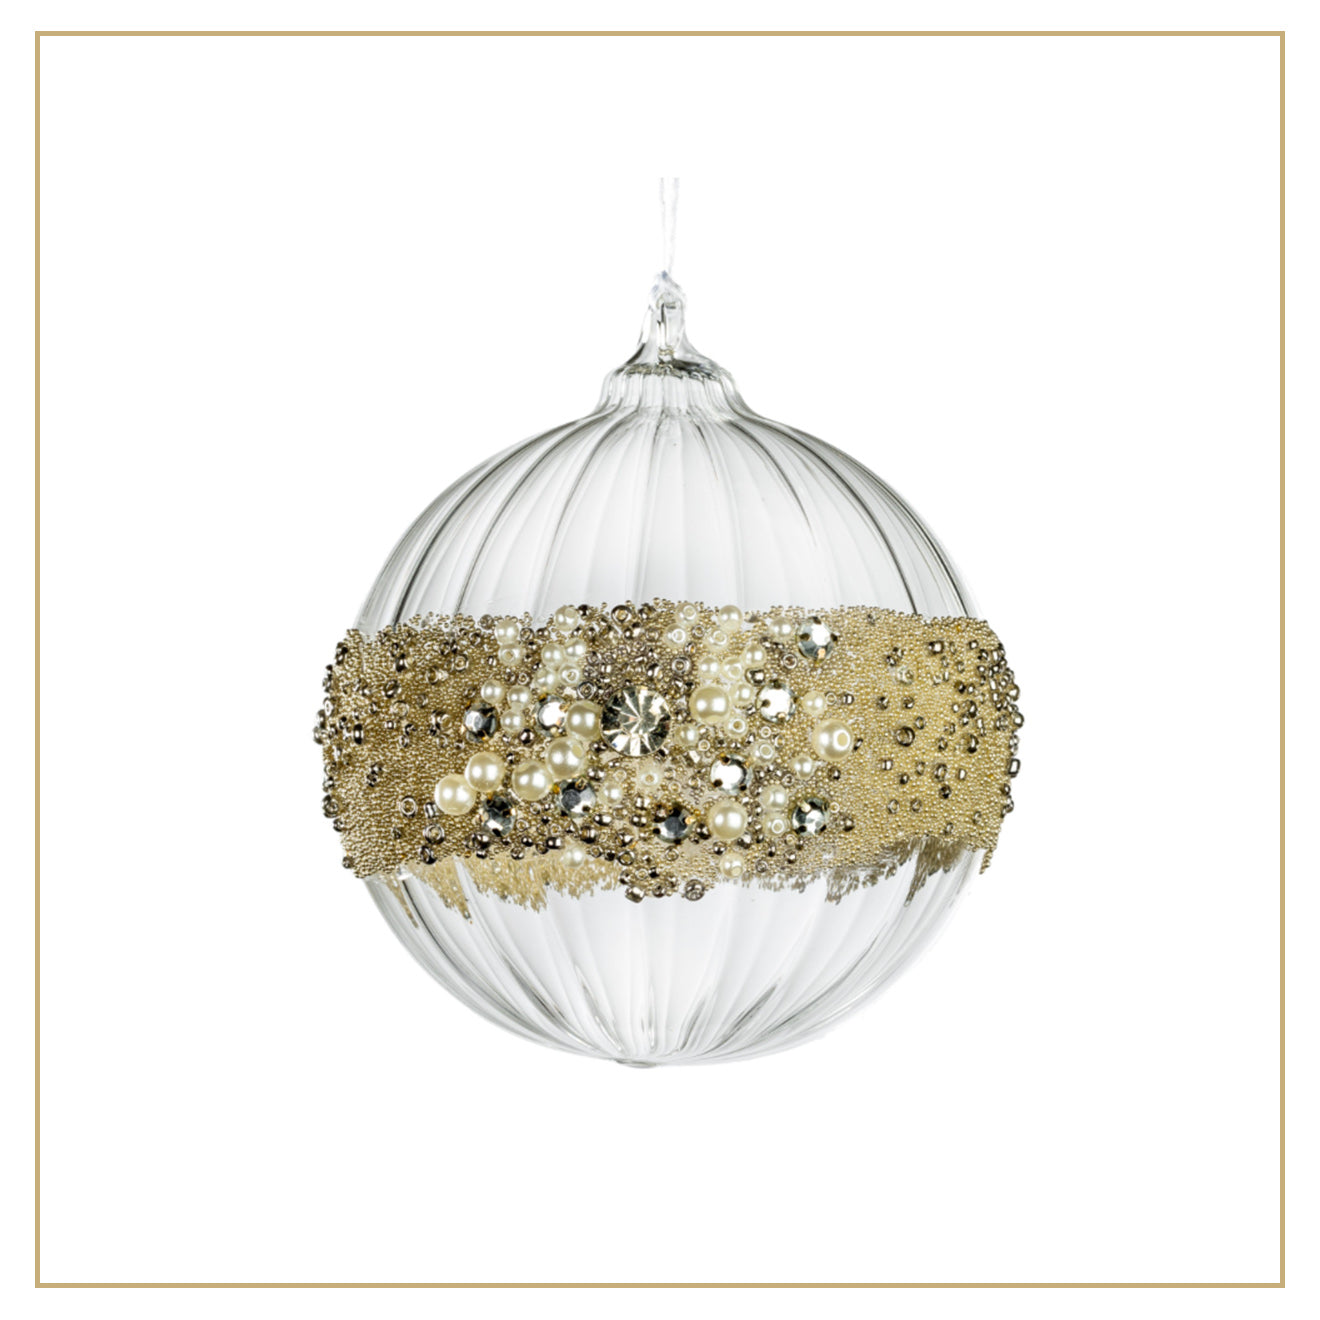 Luxdeco Christmas Ornament Tree Decoration